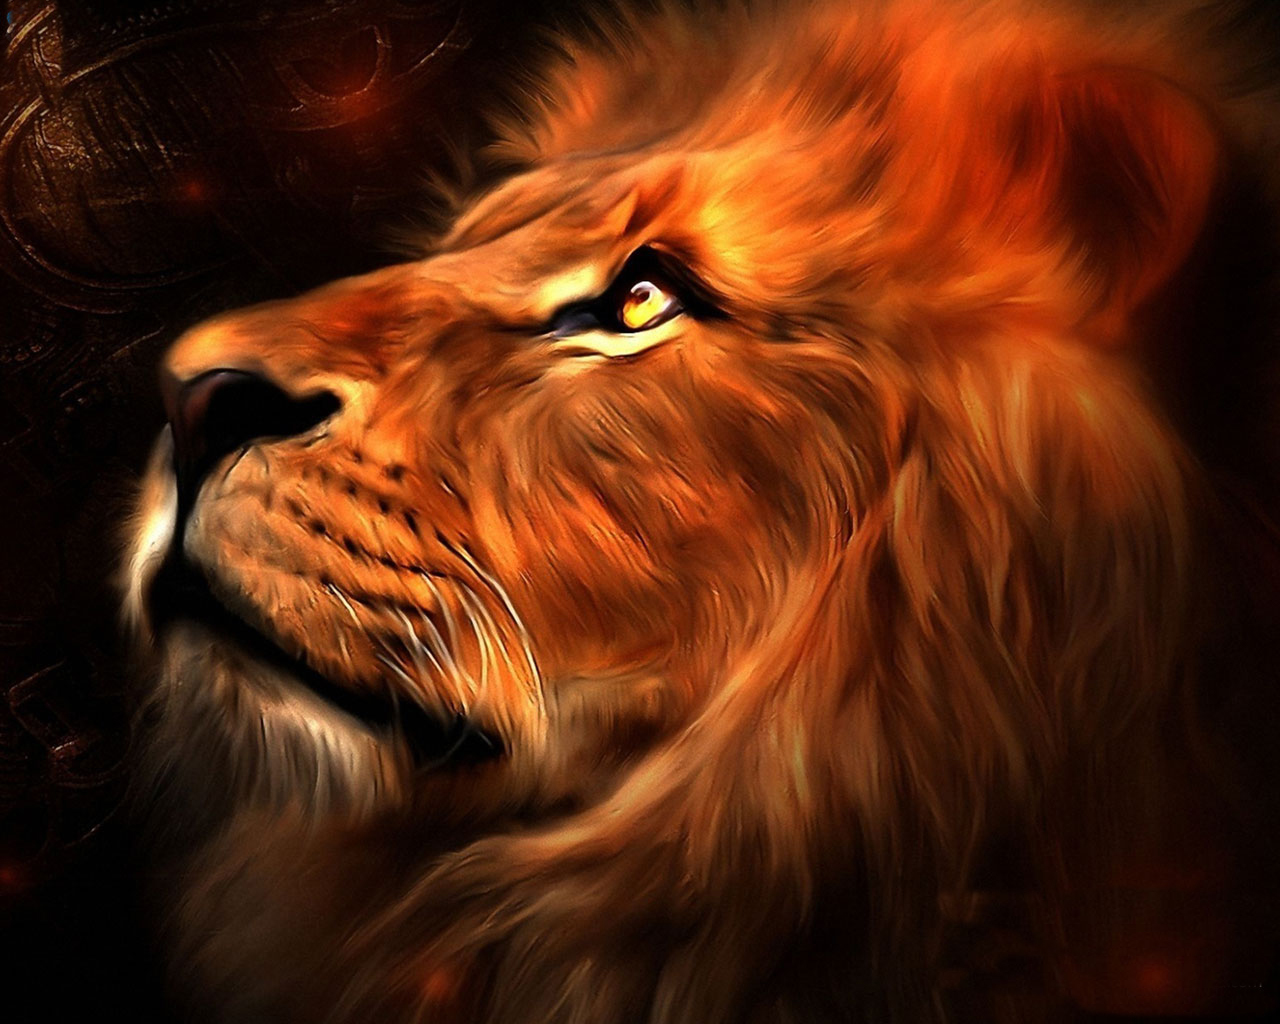 Sanny Lion Best Wallpaper 2015 Wallpapersafari